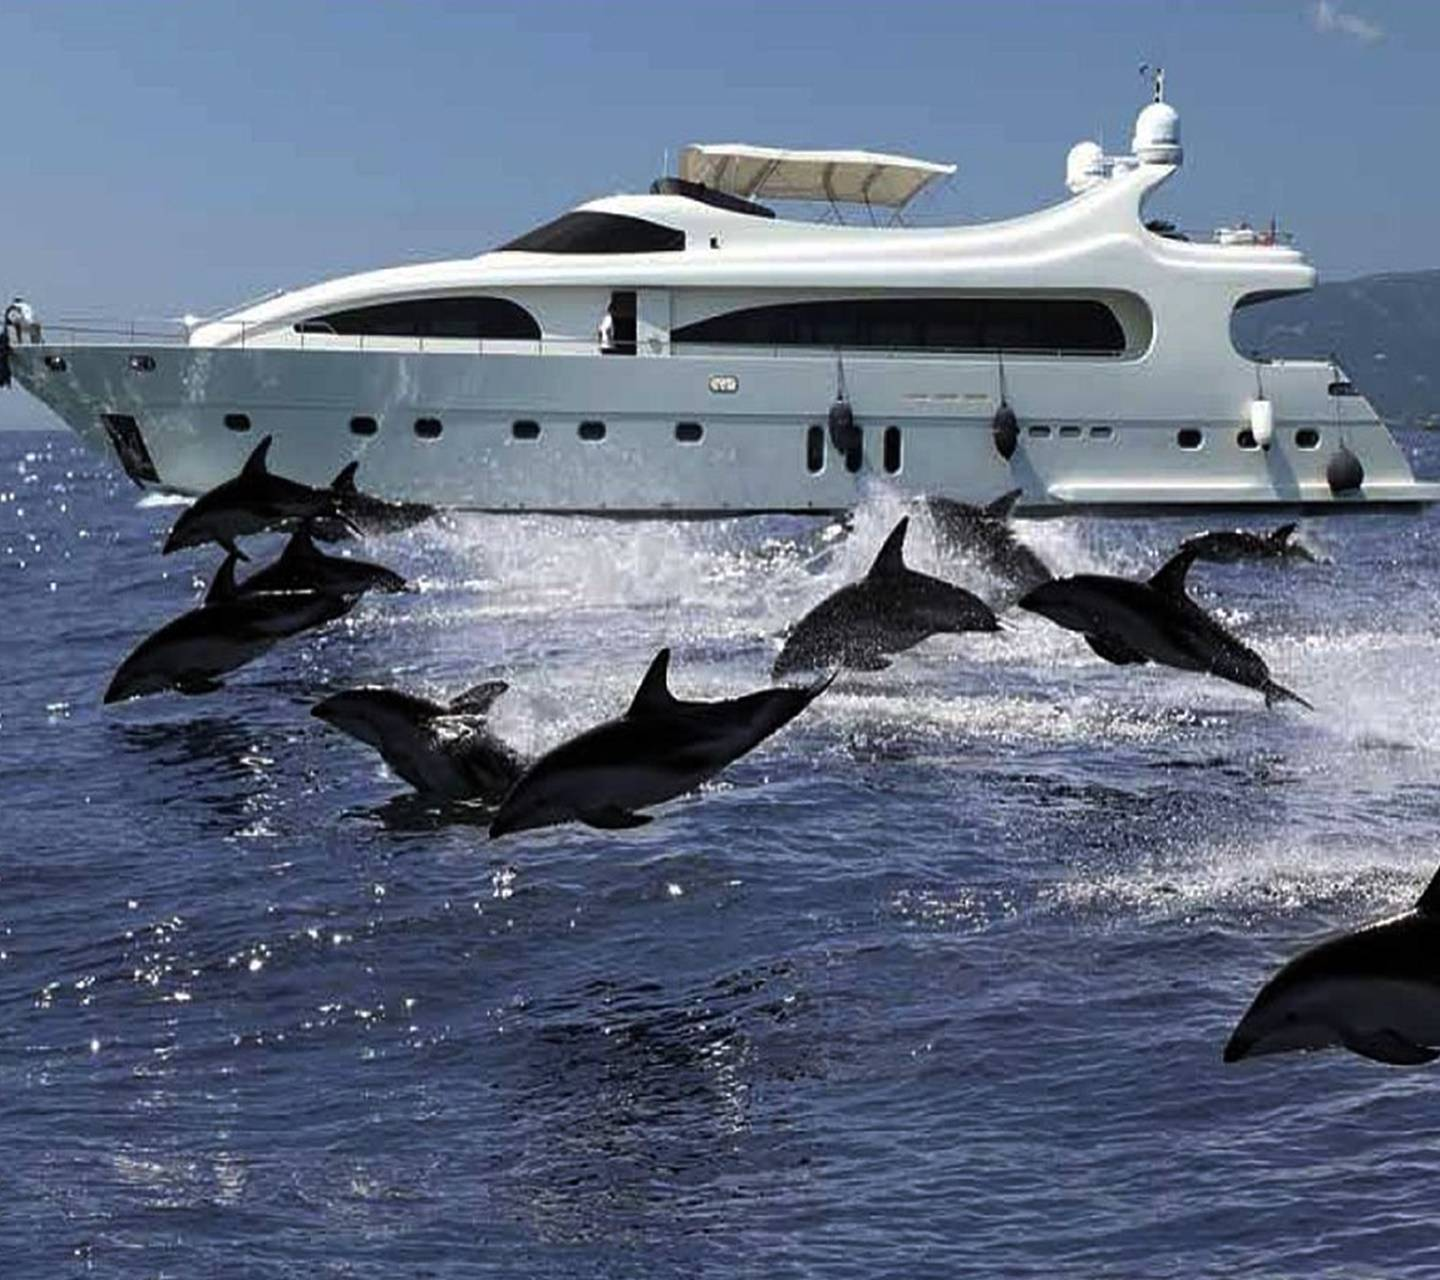 Sea And Dolphins